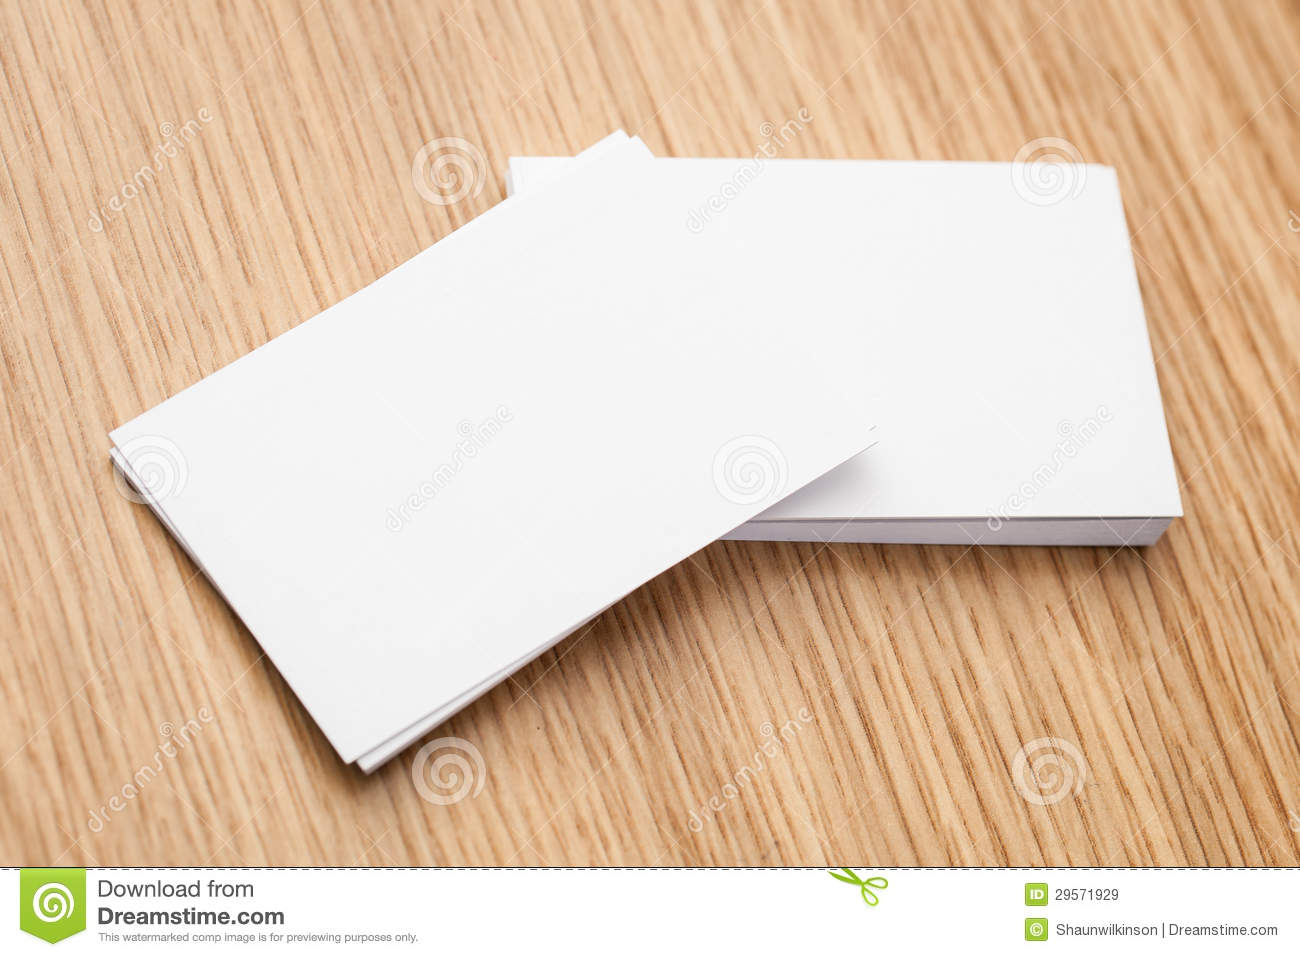 Business card pile stock image. Image of businesscard - 29571929